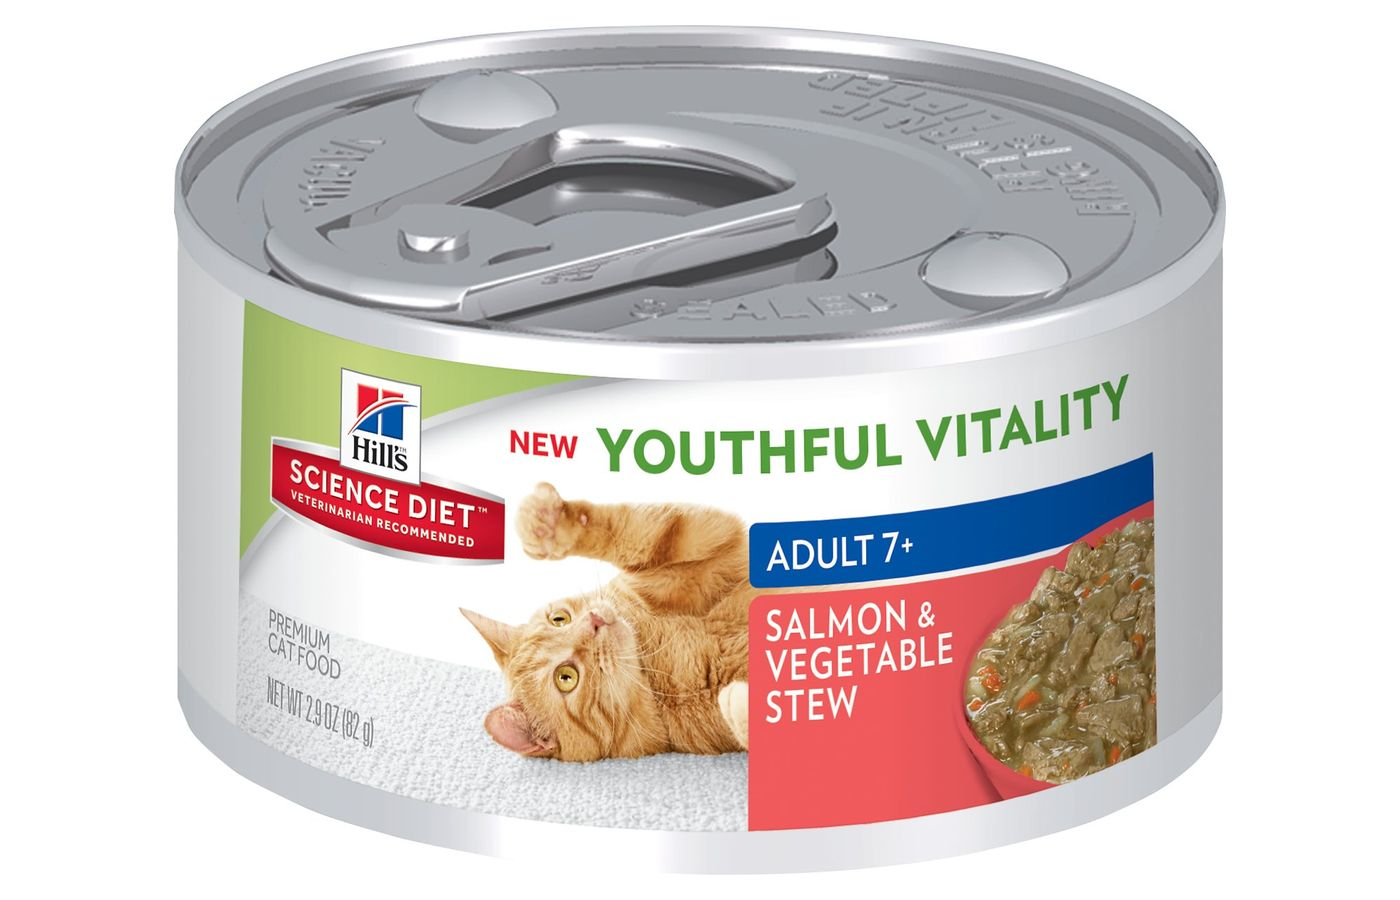 Hill's Science Diet Adult 7+ Youthful Vitality Salmon & Vegetable Stew Canned Cat Food